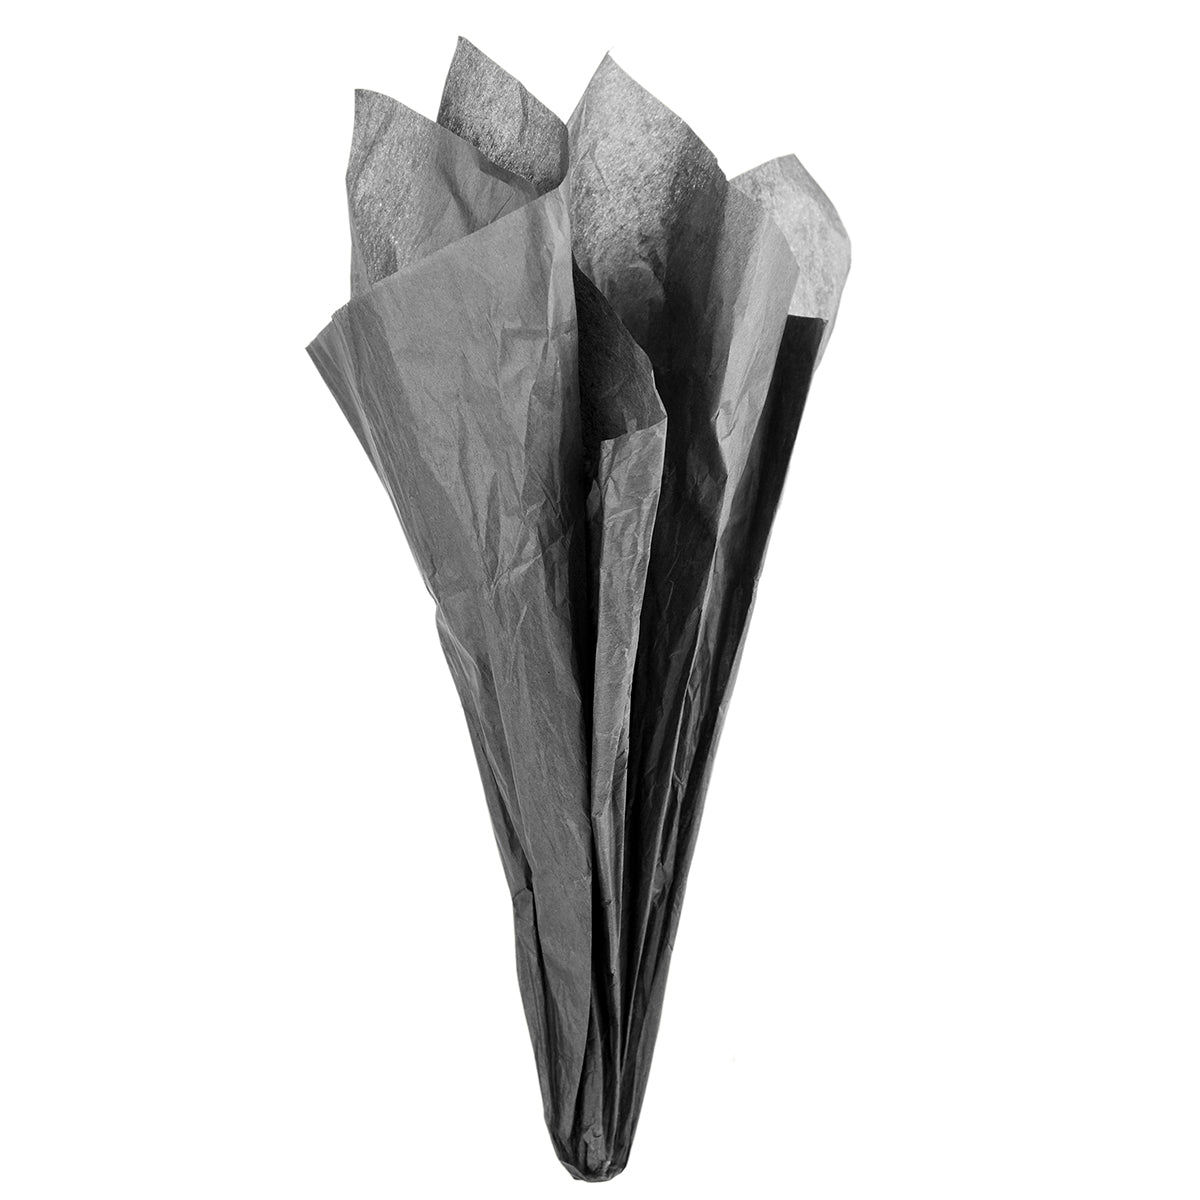 Displaying of a black tissue paper in ice cream cone shape